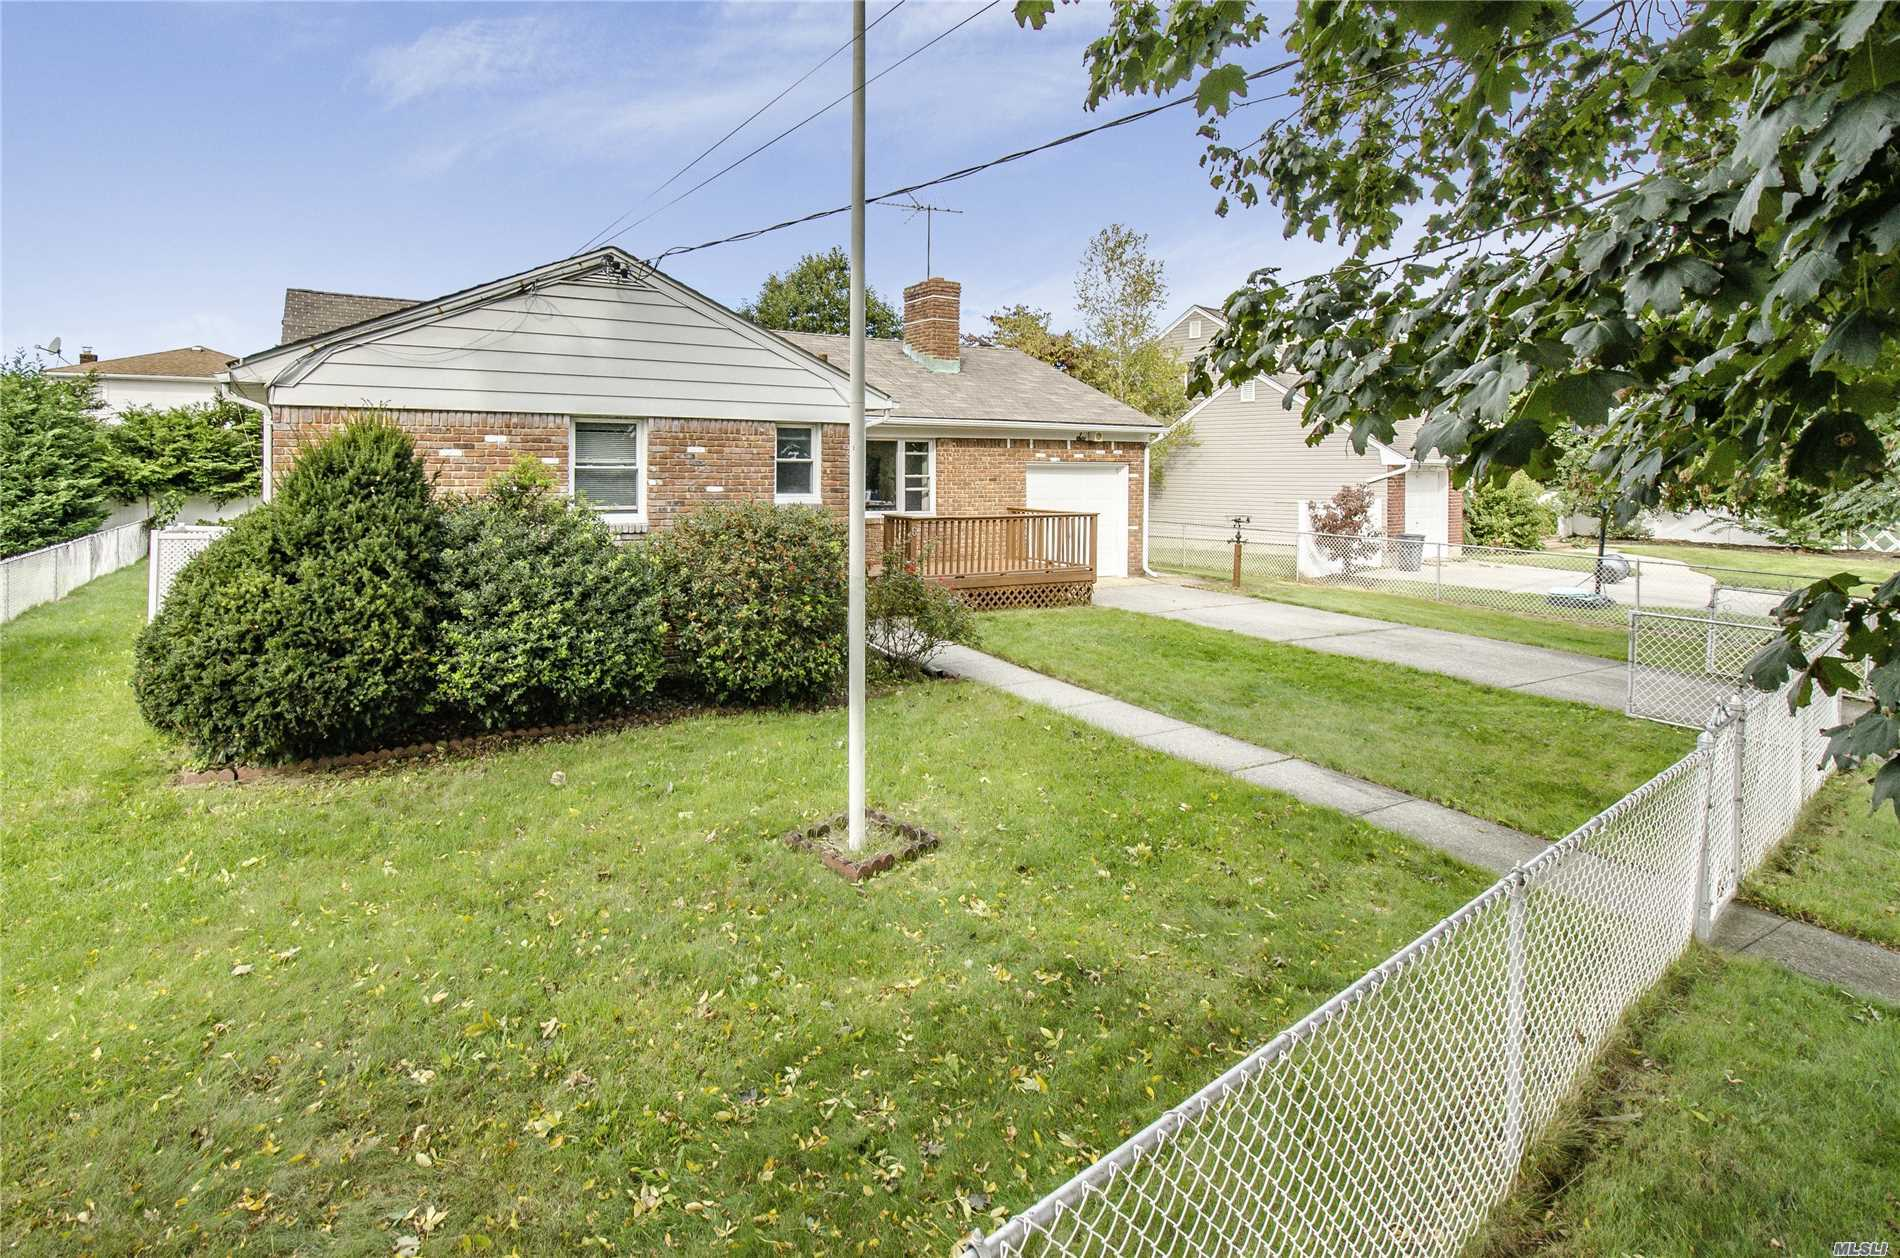 Conveniently Located Home In Close Proximity To Retail Shops, Banks, Restaurants, Supermarkets, With Easy Access To Major Highways. This Spacious And Bright Brick Ranch With Southern Exposure Featuring Master Bedroom With Bath, 2 Bedrooms, Full Bath, Newly Refinished Hardwood Floors And Freshly Painted Throughout, Living Room With Cozy Wood Burning Fireplace, Formal Dining Room, Eat In Kitchen, 200 Amp Electric, Cac, Sprinklers, Fencing In Yard, Updated Windows, Plainview Schools! Gas Available